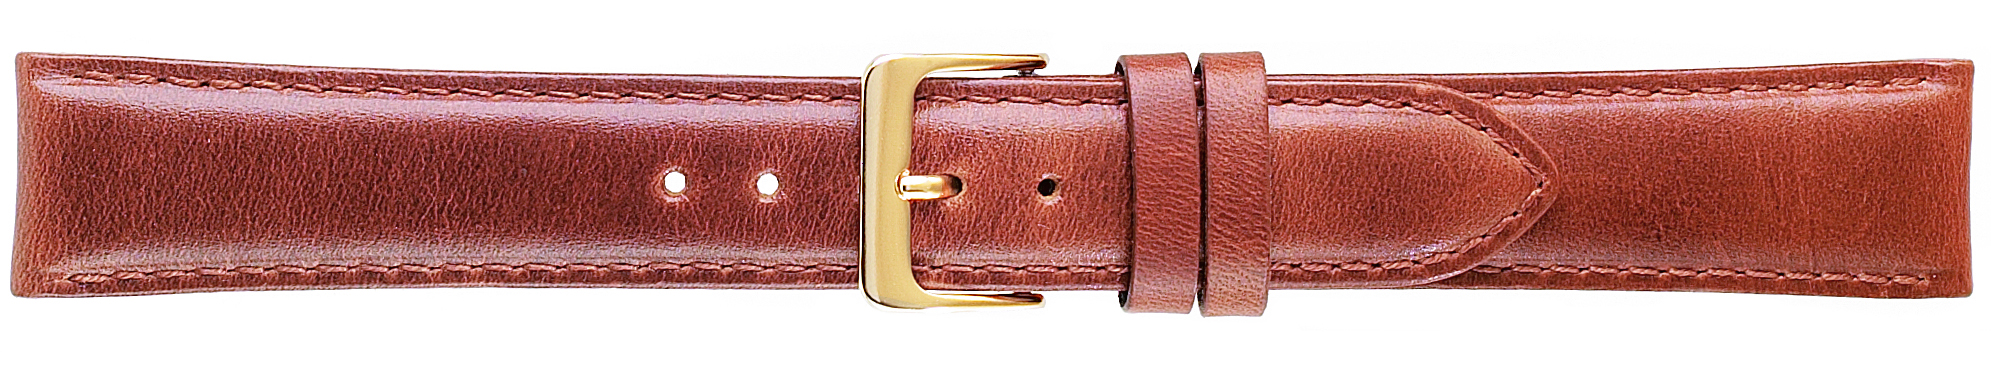 18MM Classic Oilskin Honey Brown Leather Strap-0